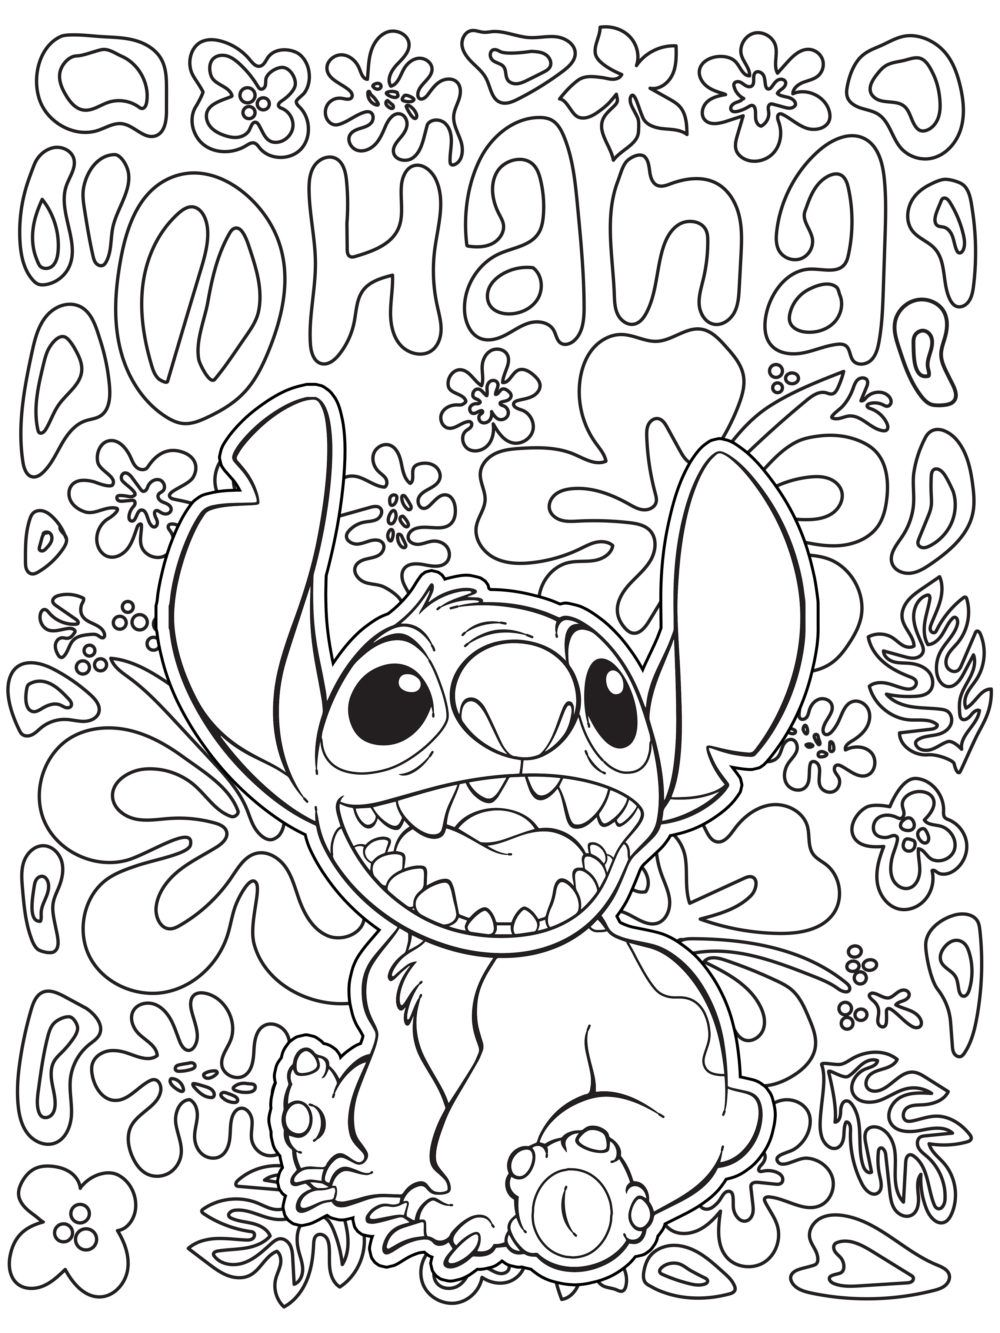 Pin by Colleen Gannon on Child Life <3 | Stitch coloring ...